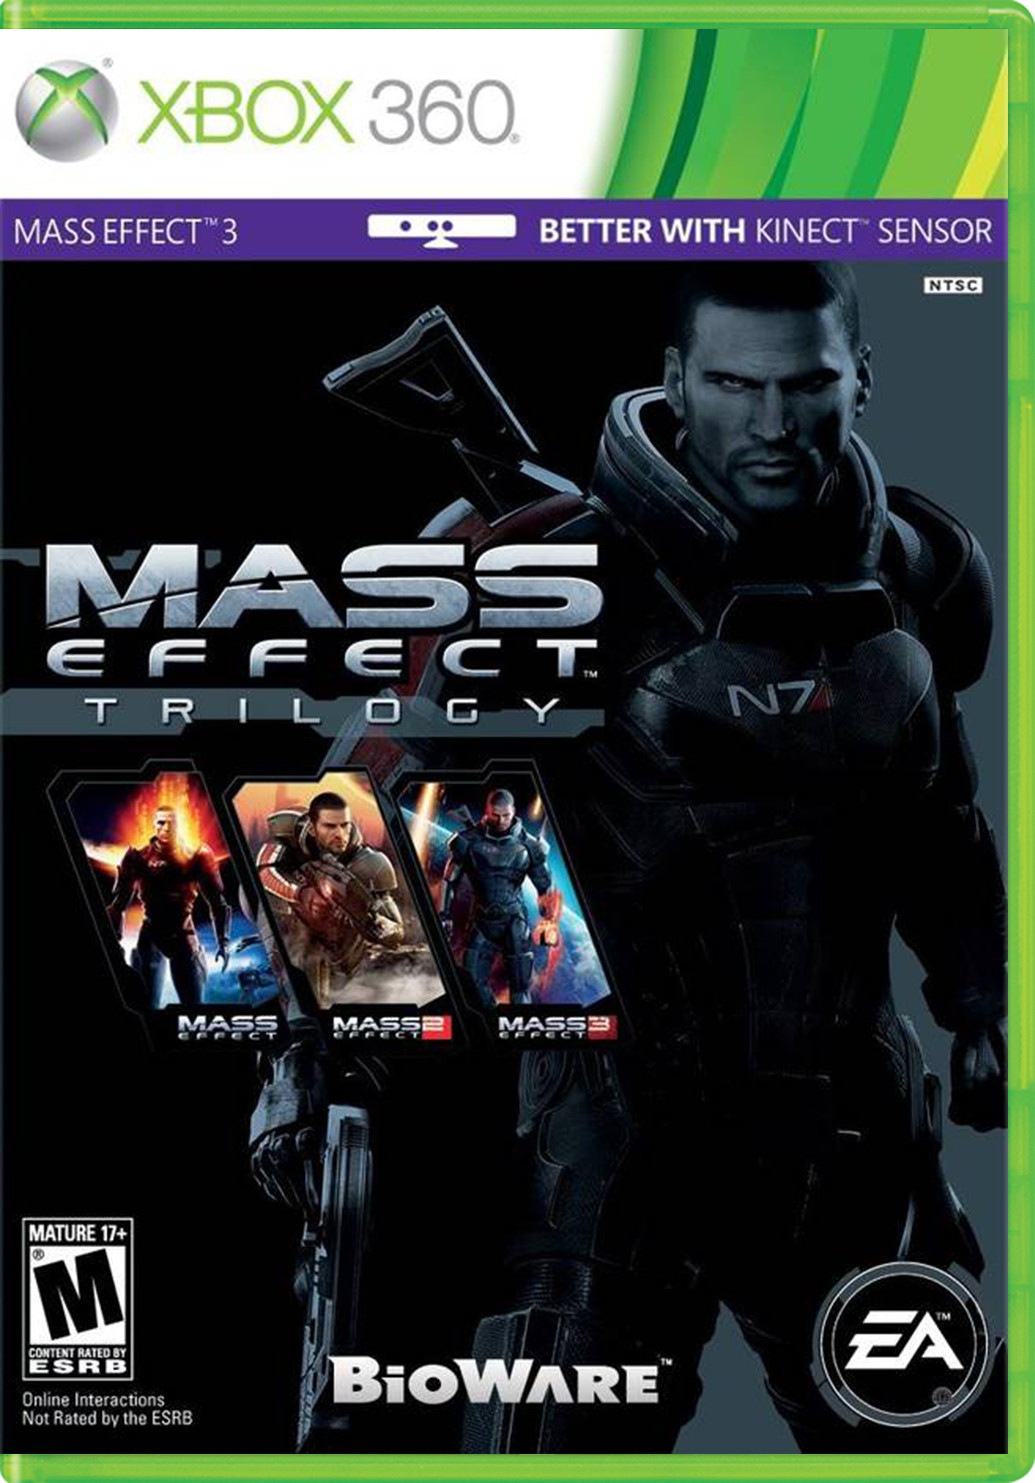 Mass effect: trilogy xbox 360 box art cover by nightshadex.